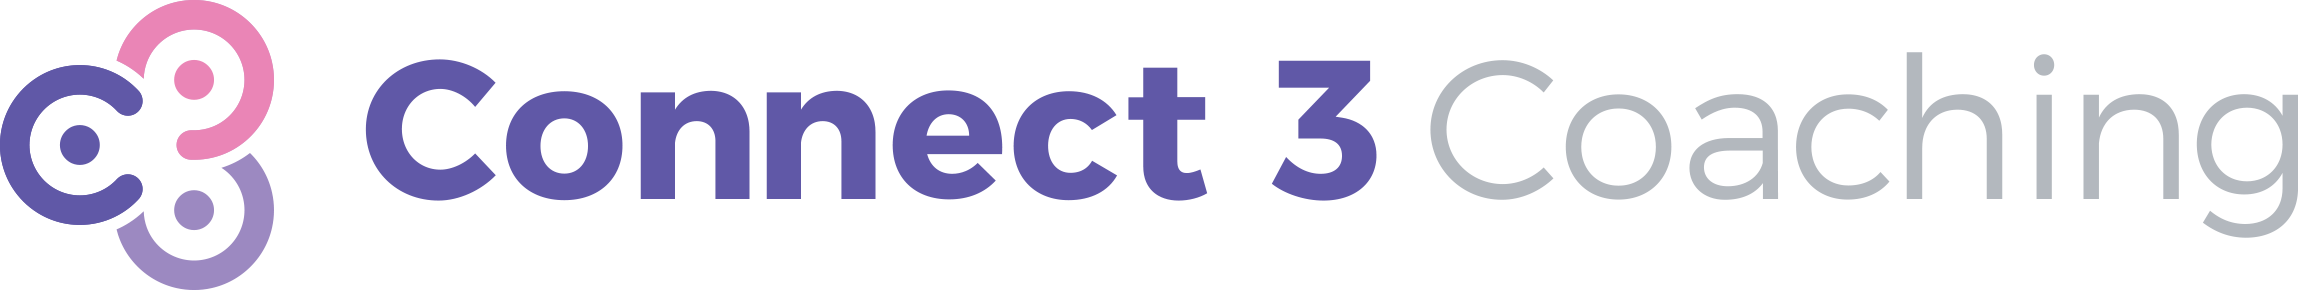 Connect_3_Coaching_Logo